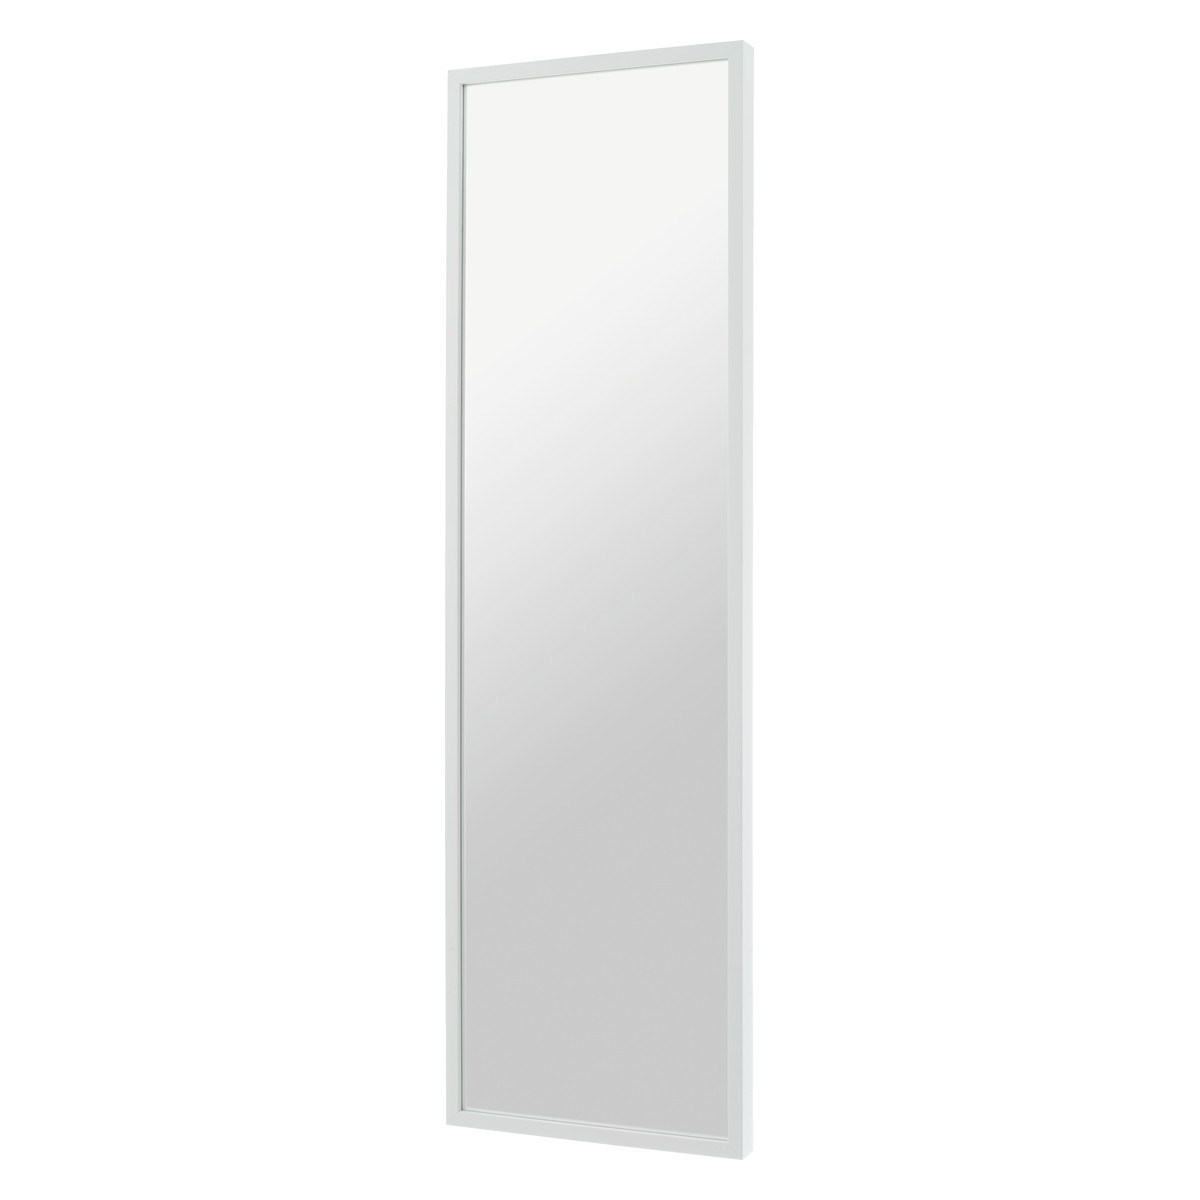 Full Length Mirrors, Wall & Round Mirrors Within Long Thin Wall Mirrors (View 4 of 20)